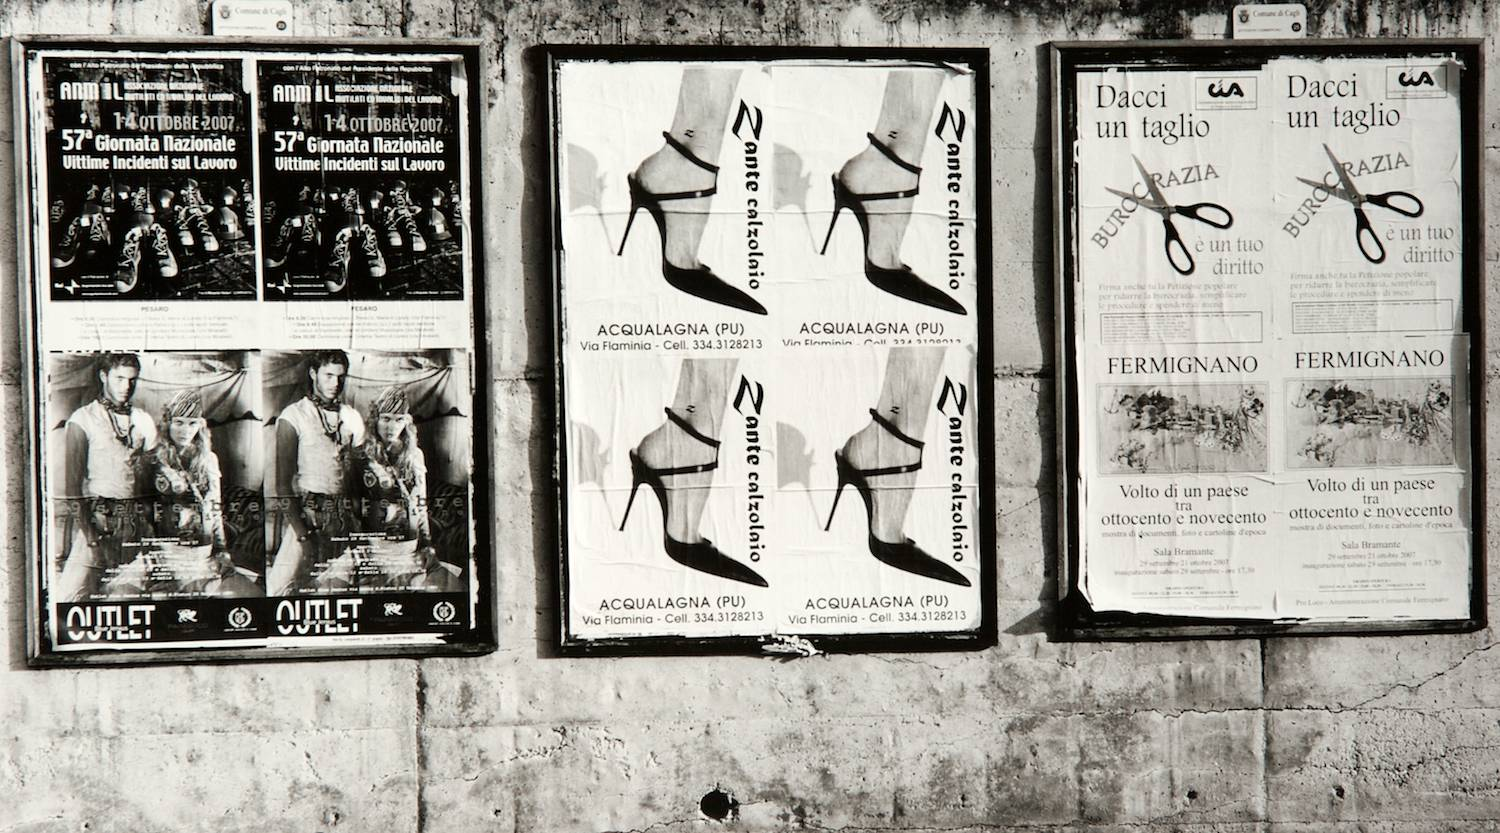 Posters (Cagli, Italy)